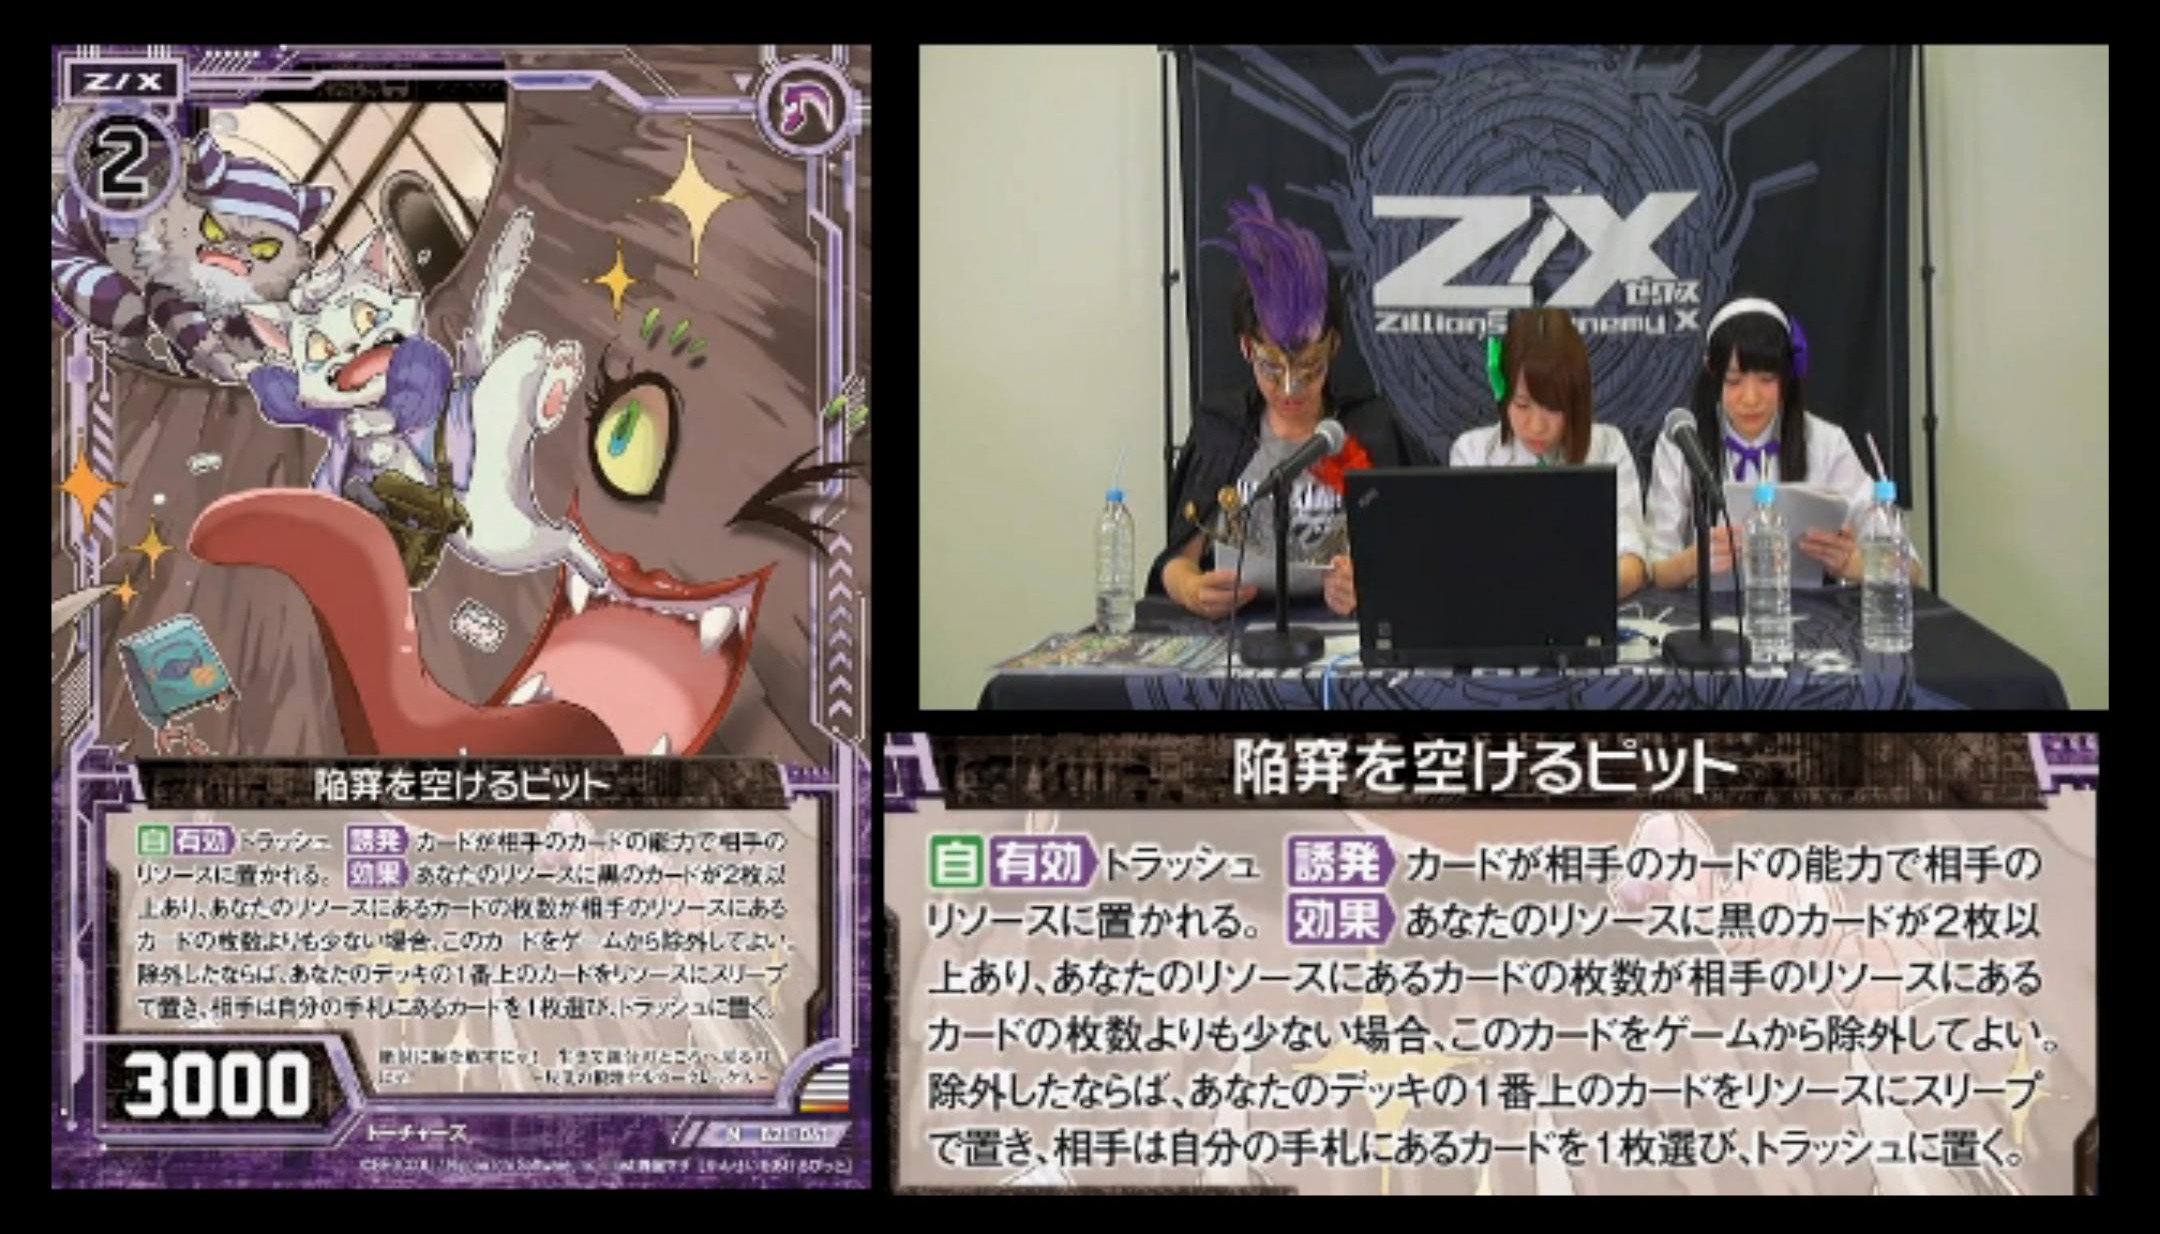 zx-ignition-broadcast-170531-021.jpg